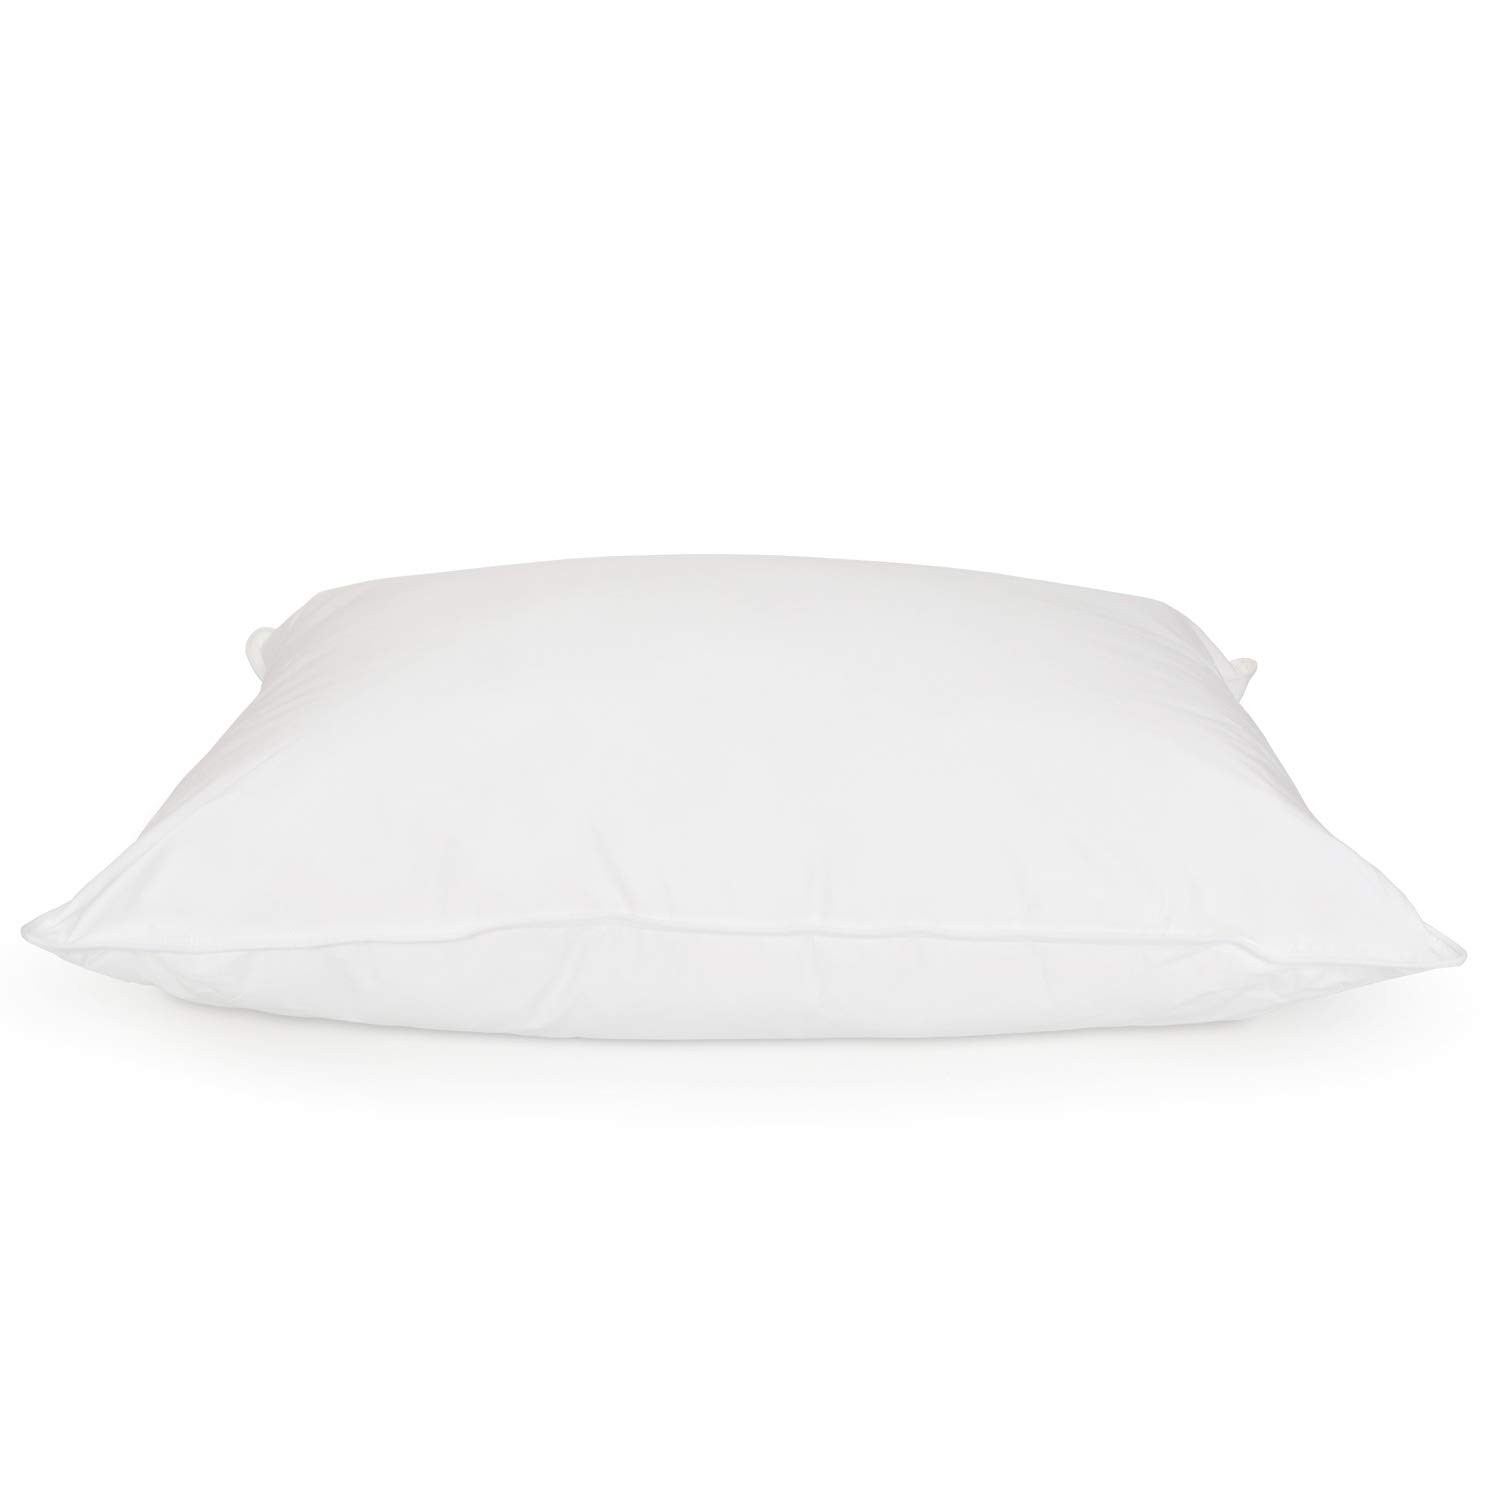 DOWNLITE Luxury Hotel Collection 400 TC 25/75 Down and Feather Blend Pillow - Medium Firm Density Hypoallergenic White Goose Down (King 20'' x 36'')